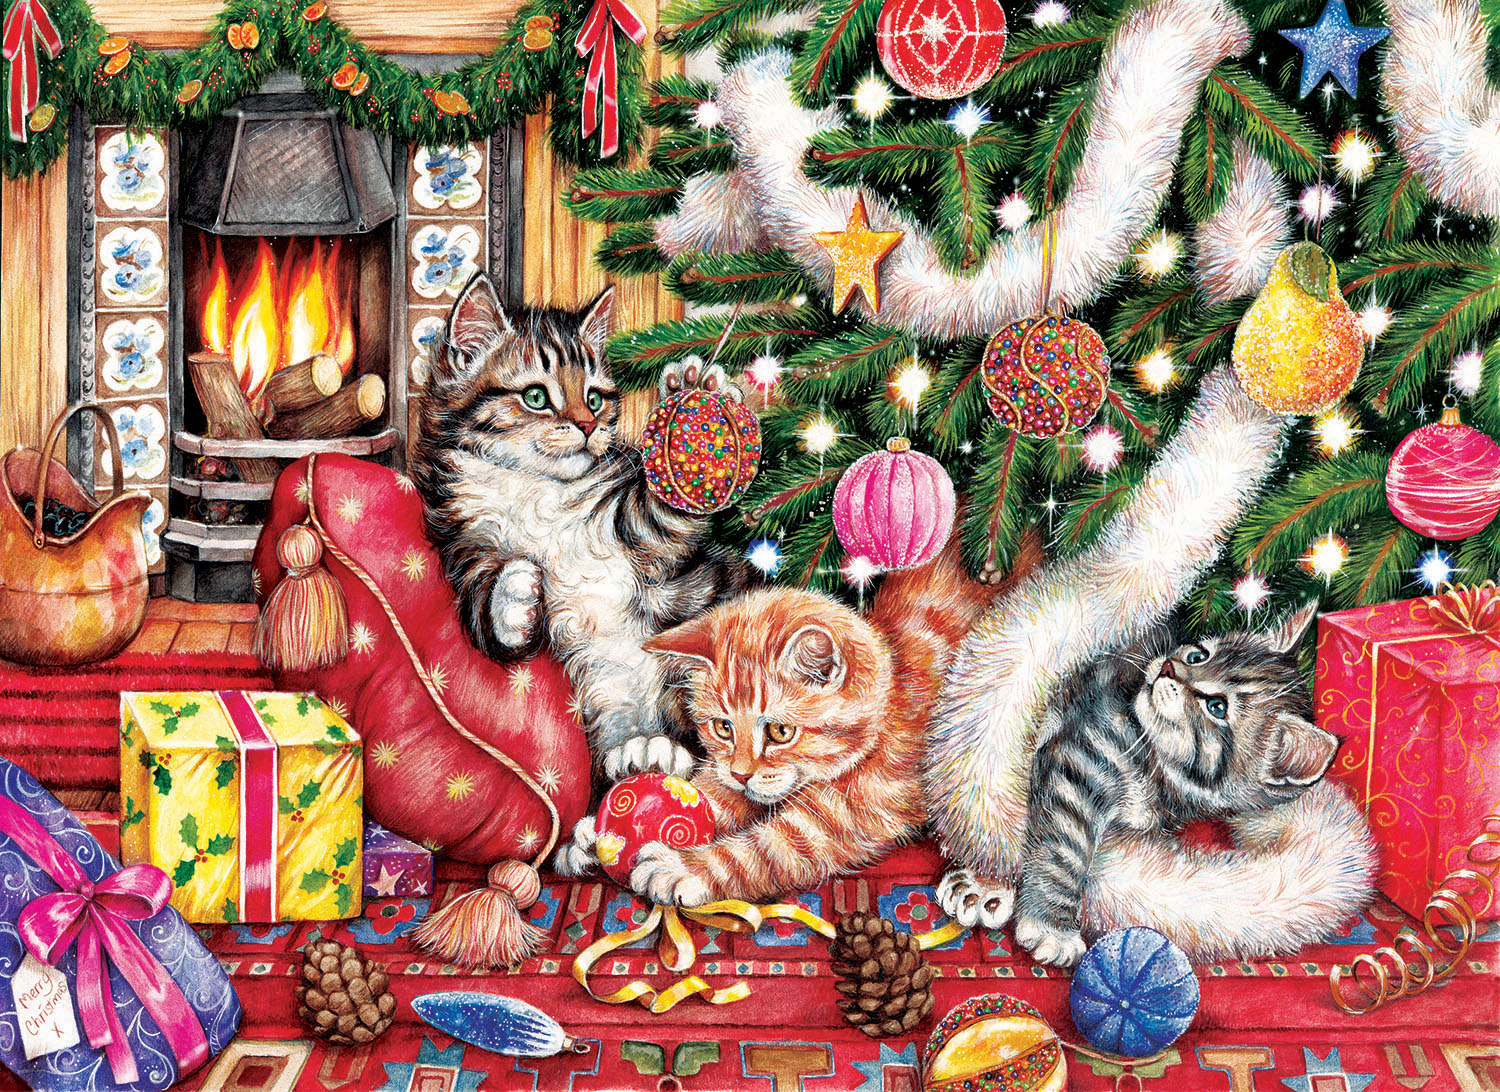 Cats and Baubles